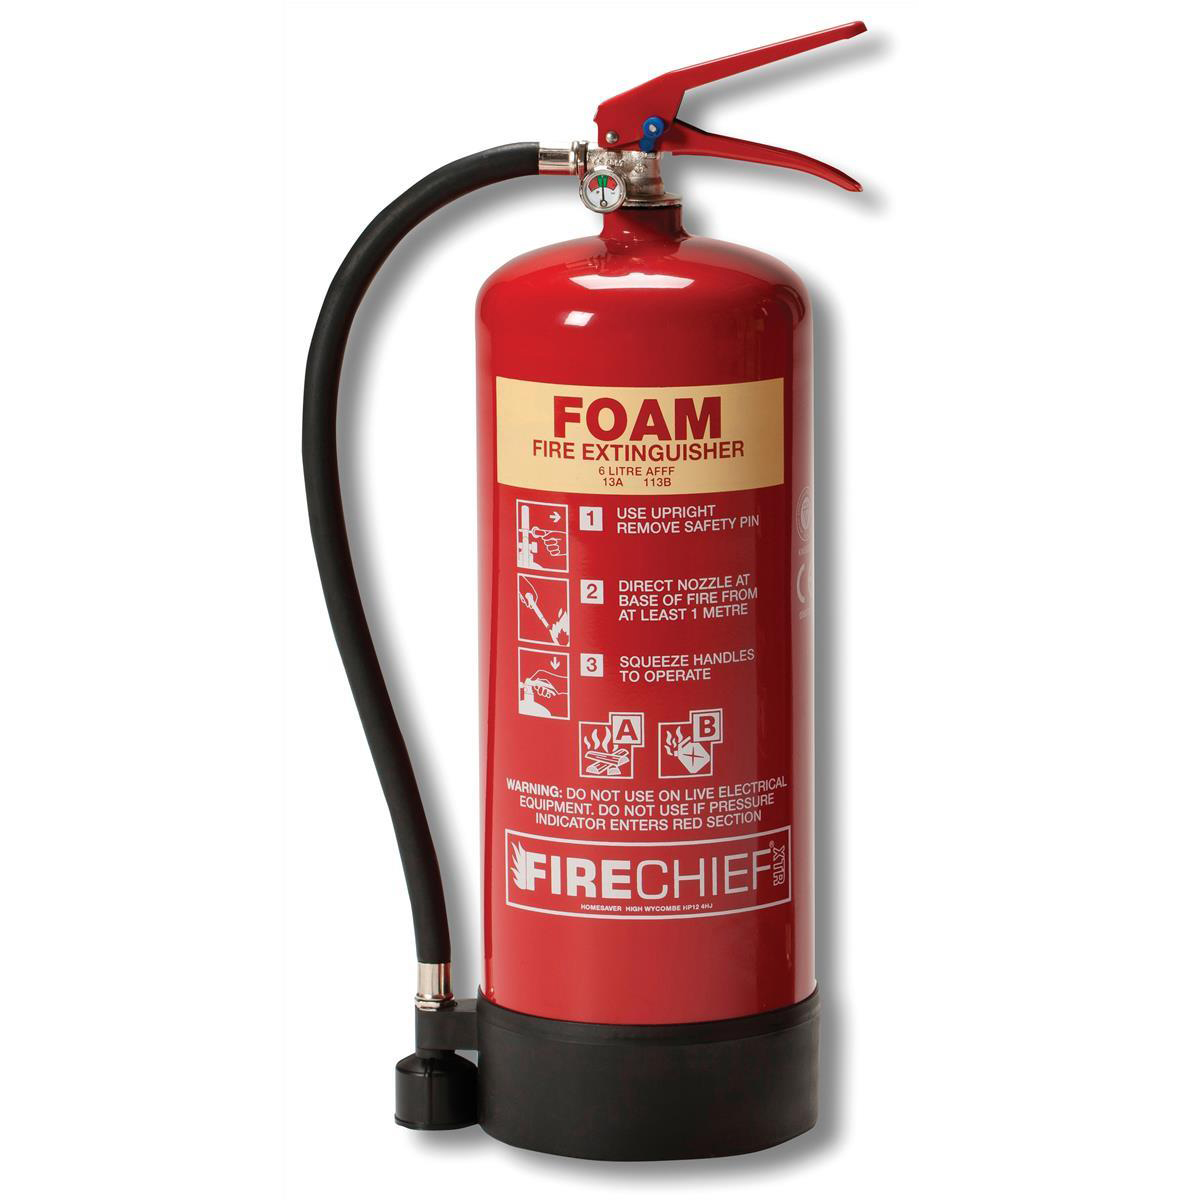 Firechief 6.0LTR Foam Fire Extinguisher for Class A and B Fires Ref WG10144